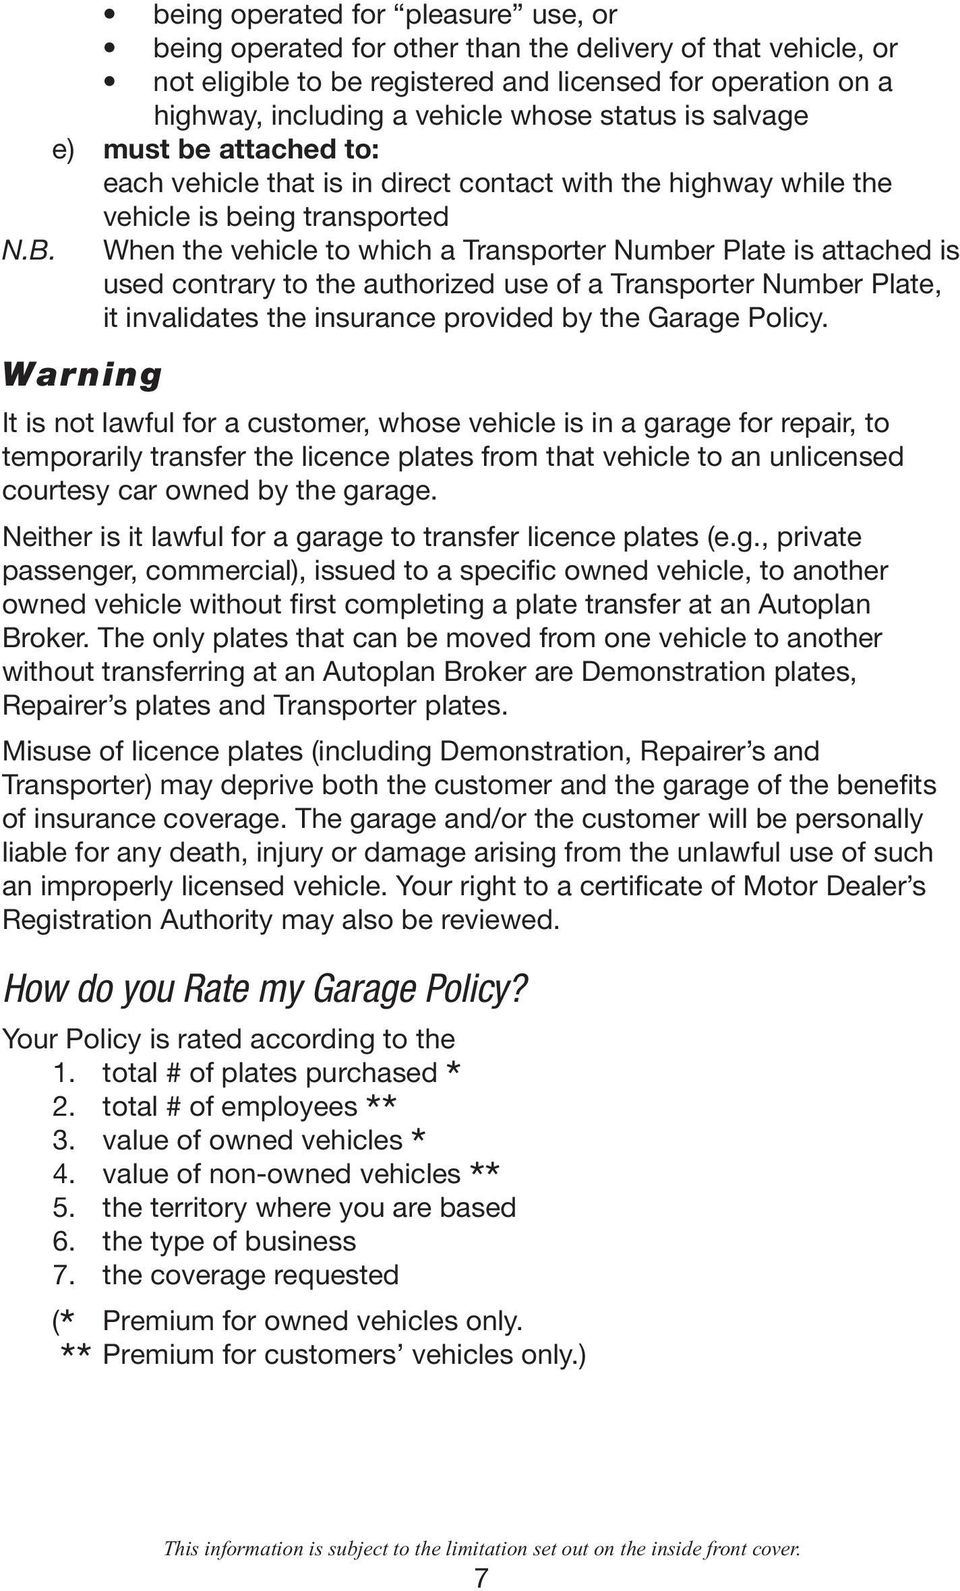 When the vehicle to which a Transporter Number Plate is attached is used contrary to the authorized use of a Transporter Number Plate, it invalidates the insurance provided by the Garage Policy.